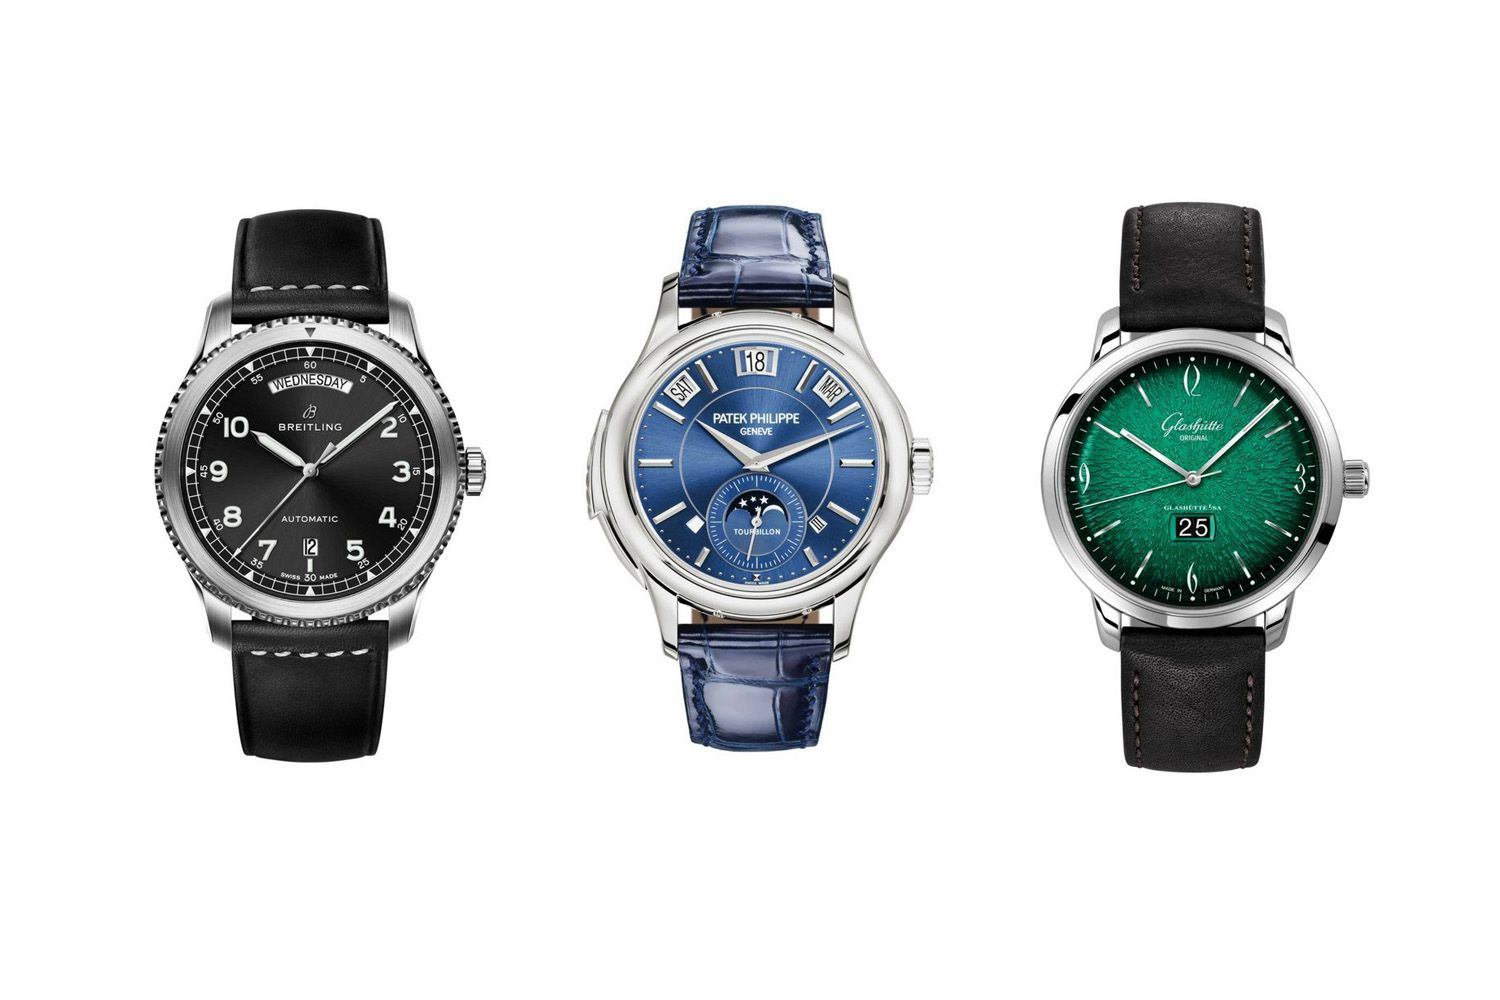 12 Luxury Watches With Date Functions